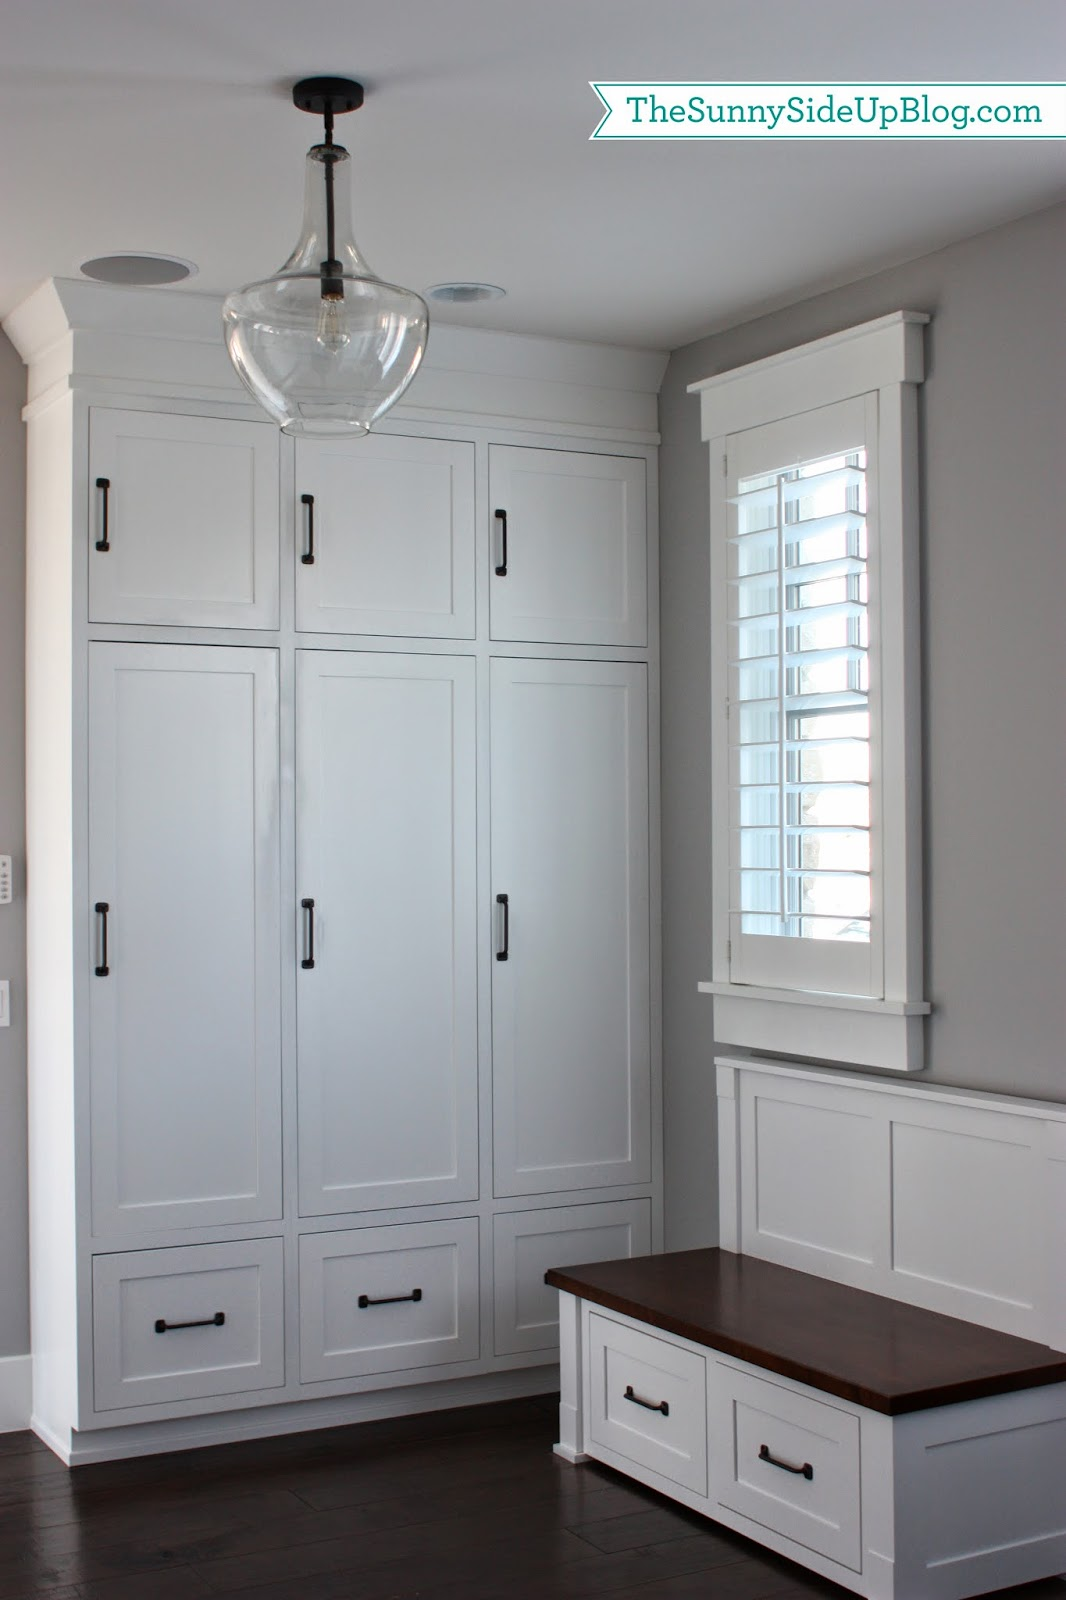 Mudroom lockers with doors - Mudroom Lockers With Doors 20